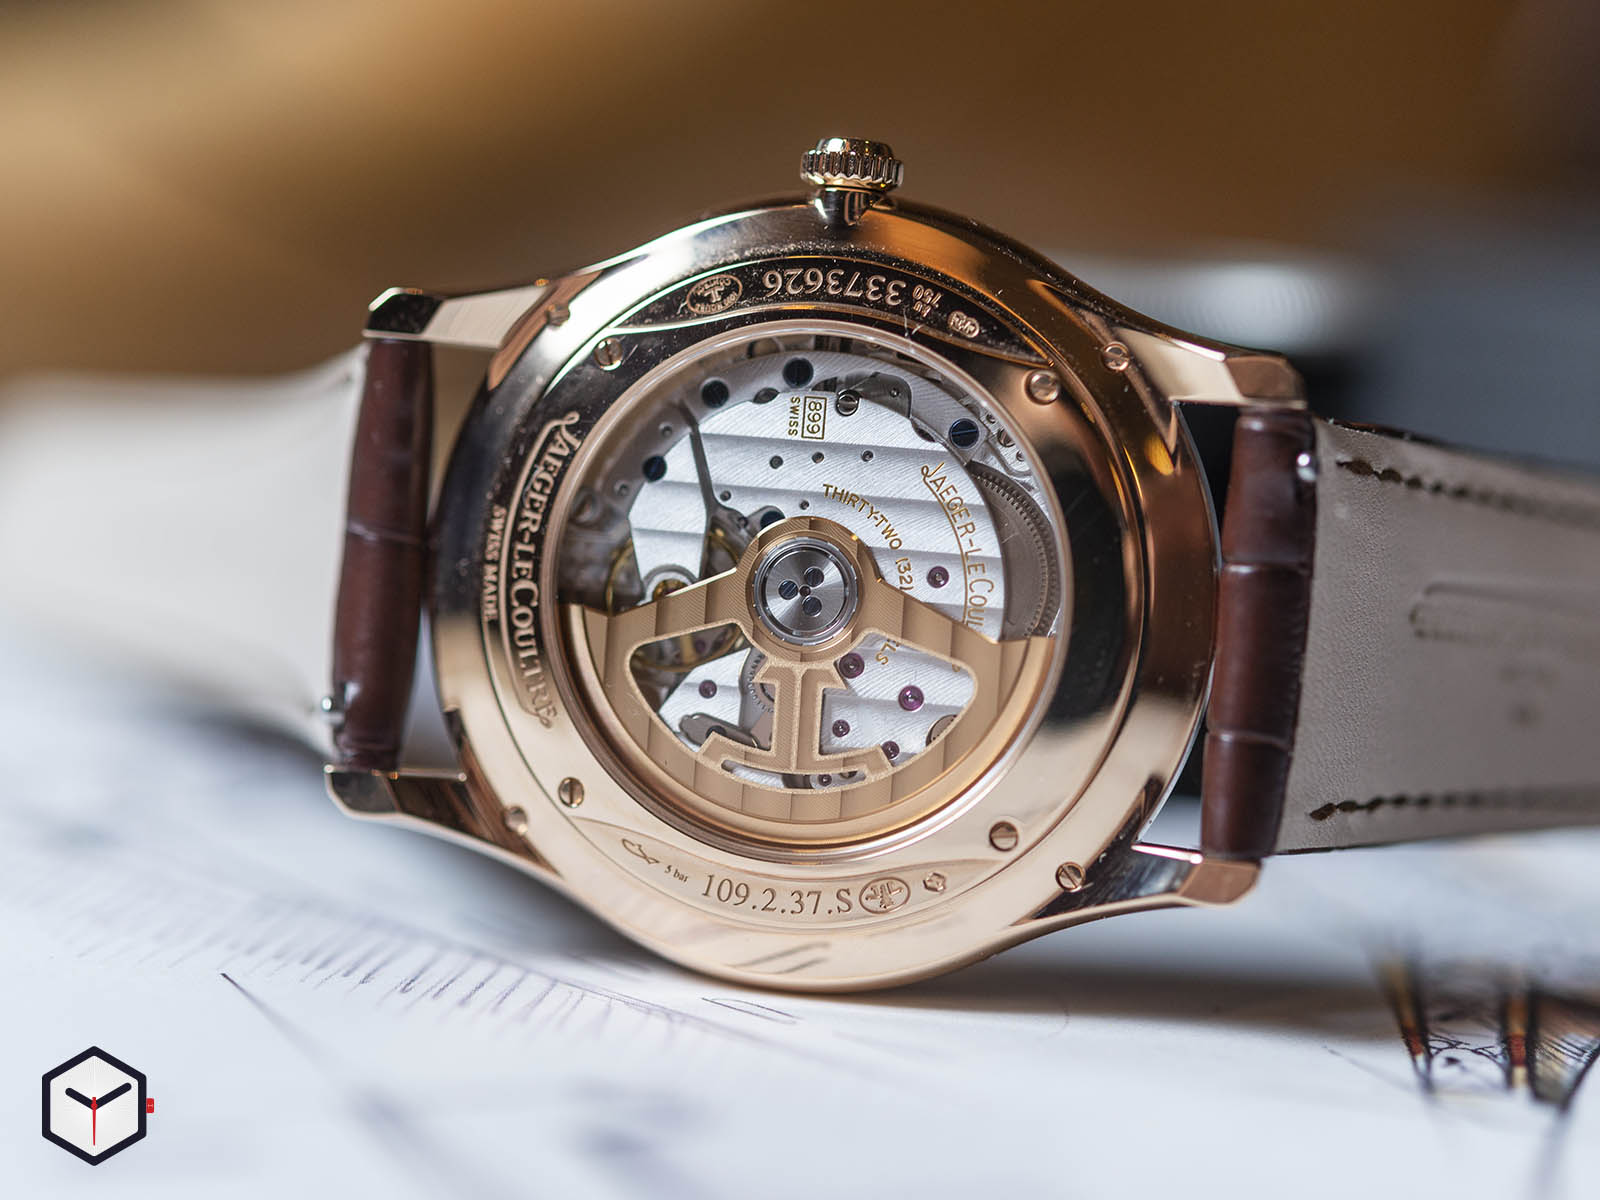 1232510-jaeger-lecoultre-master-ultra-thin-date-sihh-2019-4-.jpg